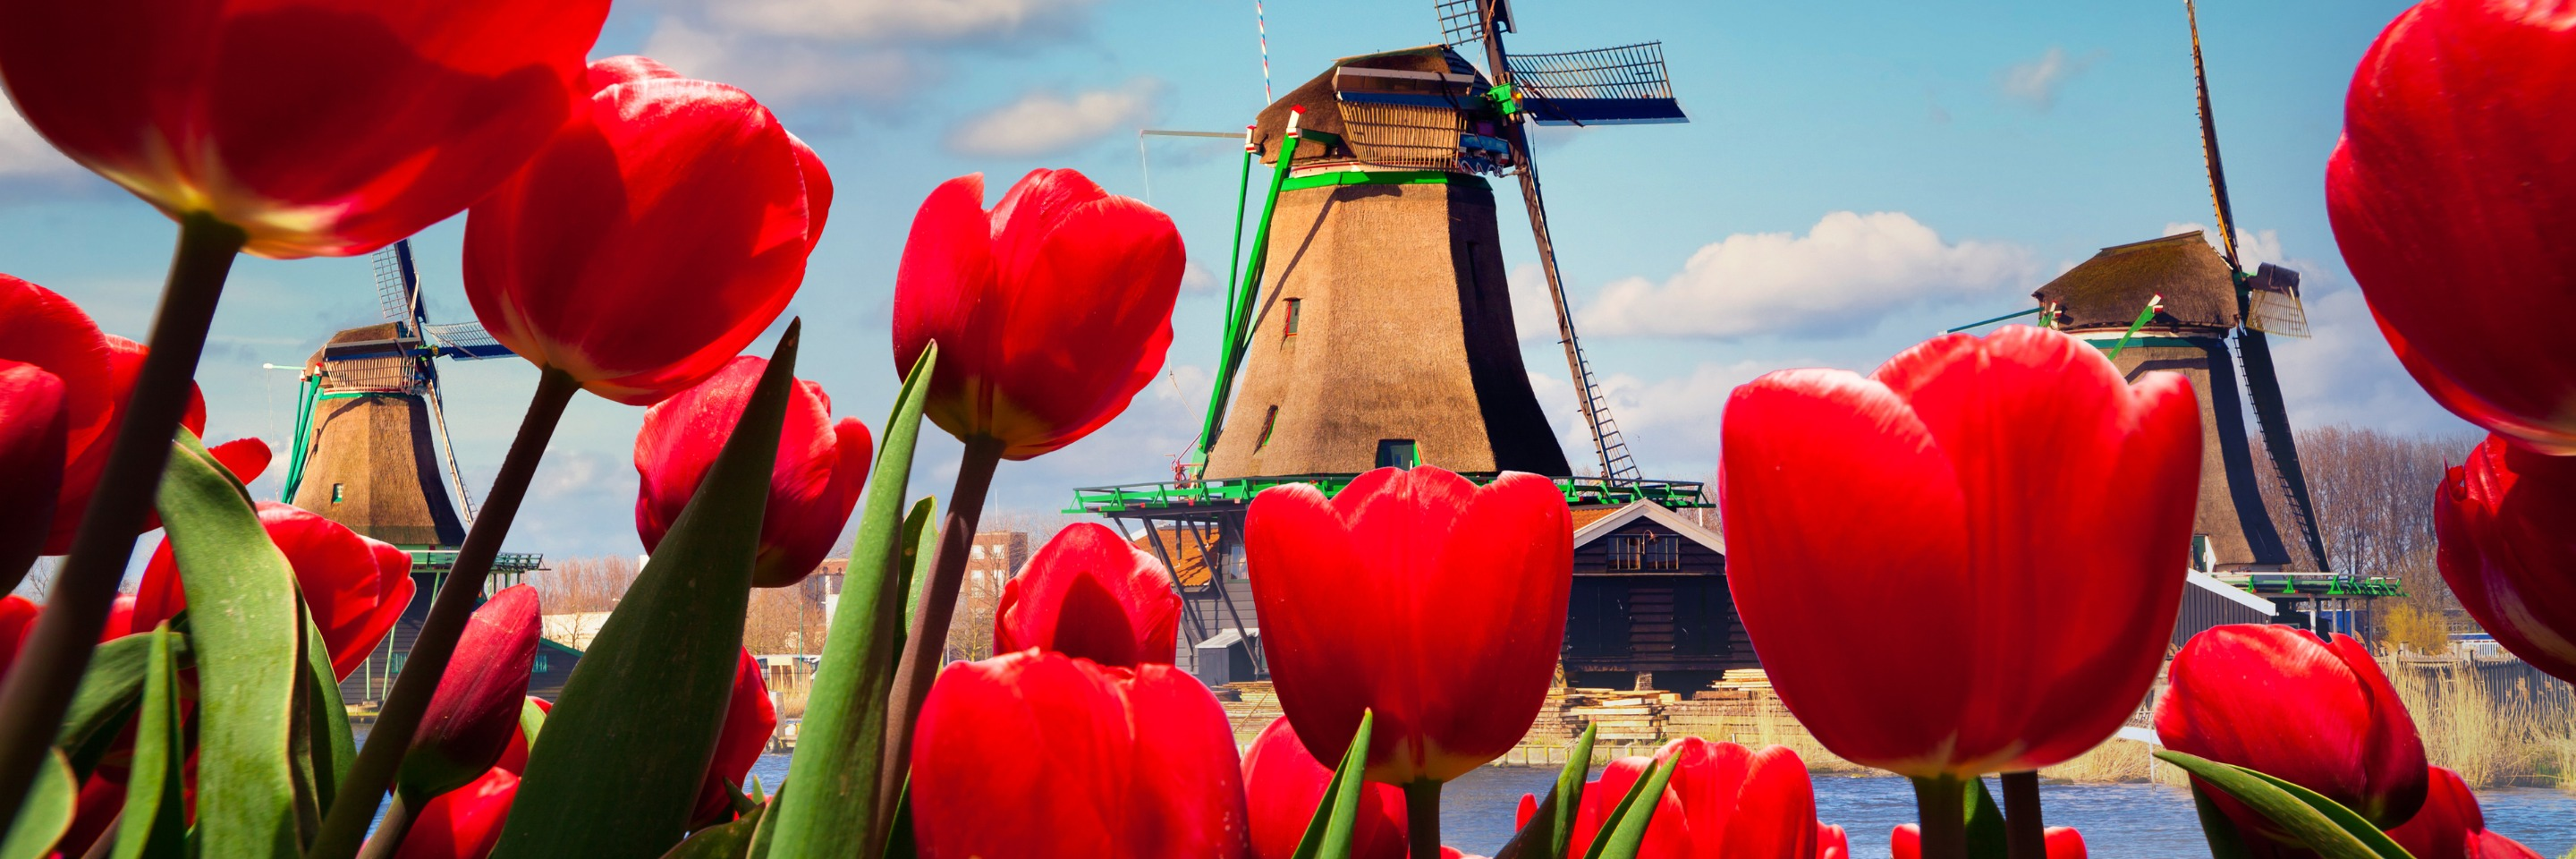 Tulip Time Cruise with 1 Night in Amsterdam & 3 Nights in Paris for Garden & Nature Lovers